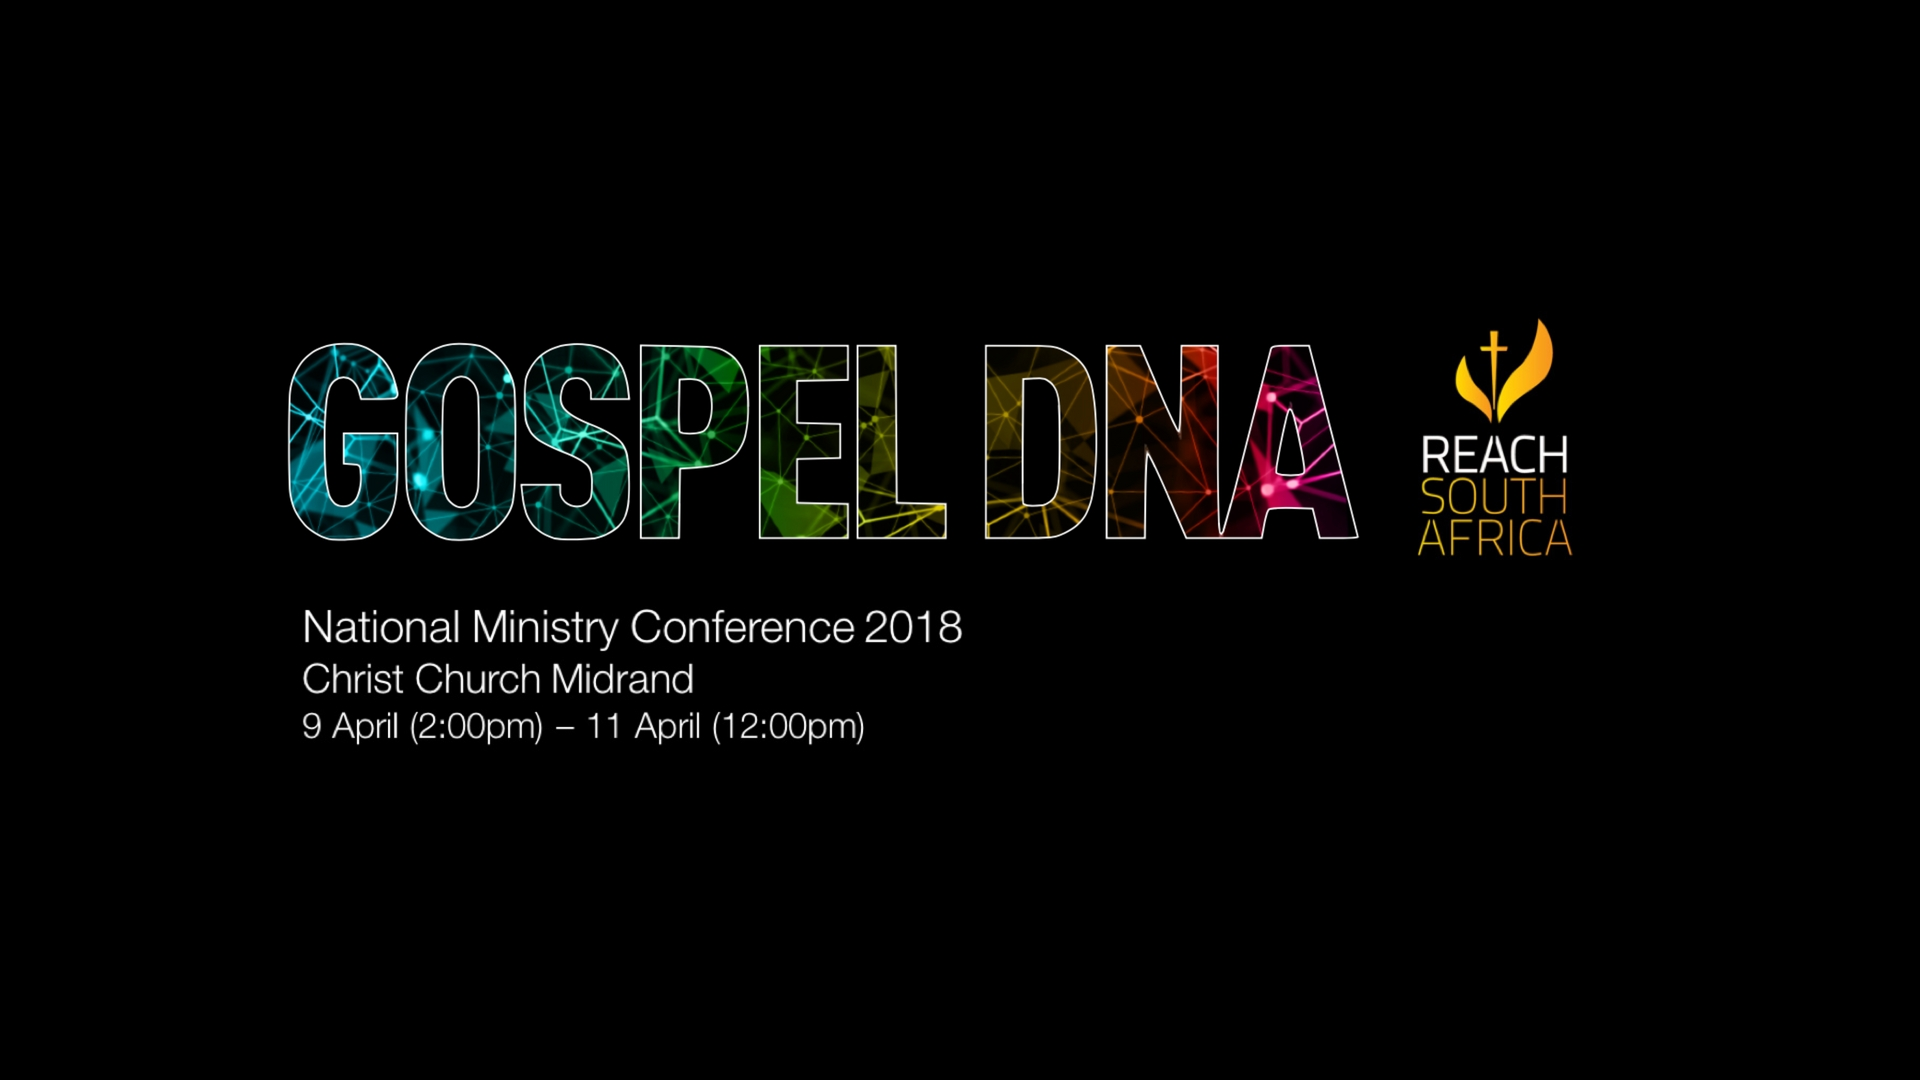 National Ministry Conference 2018